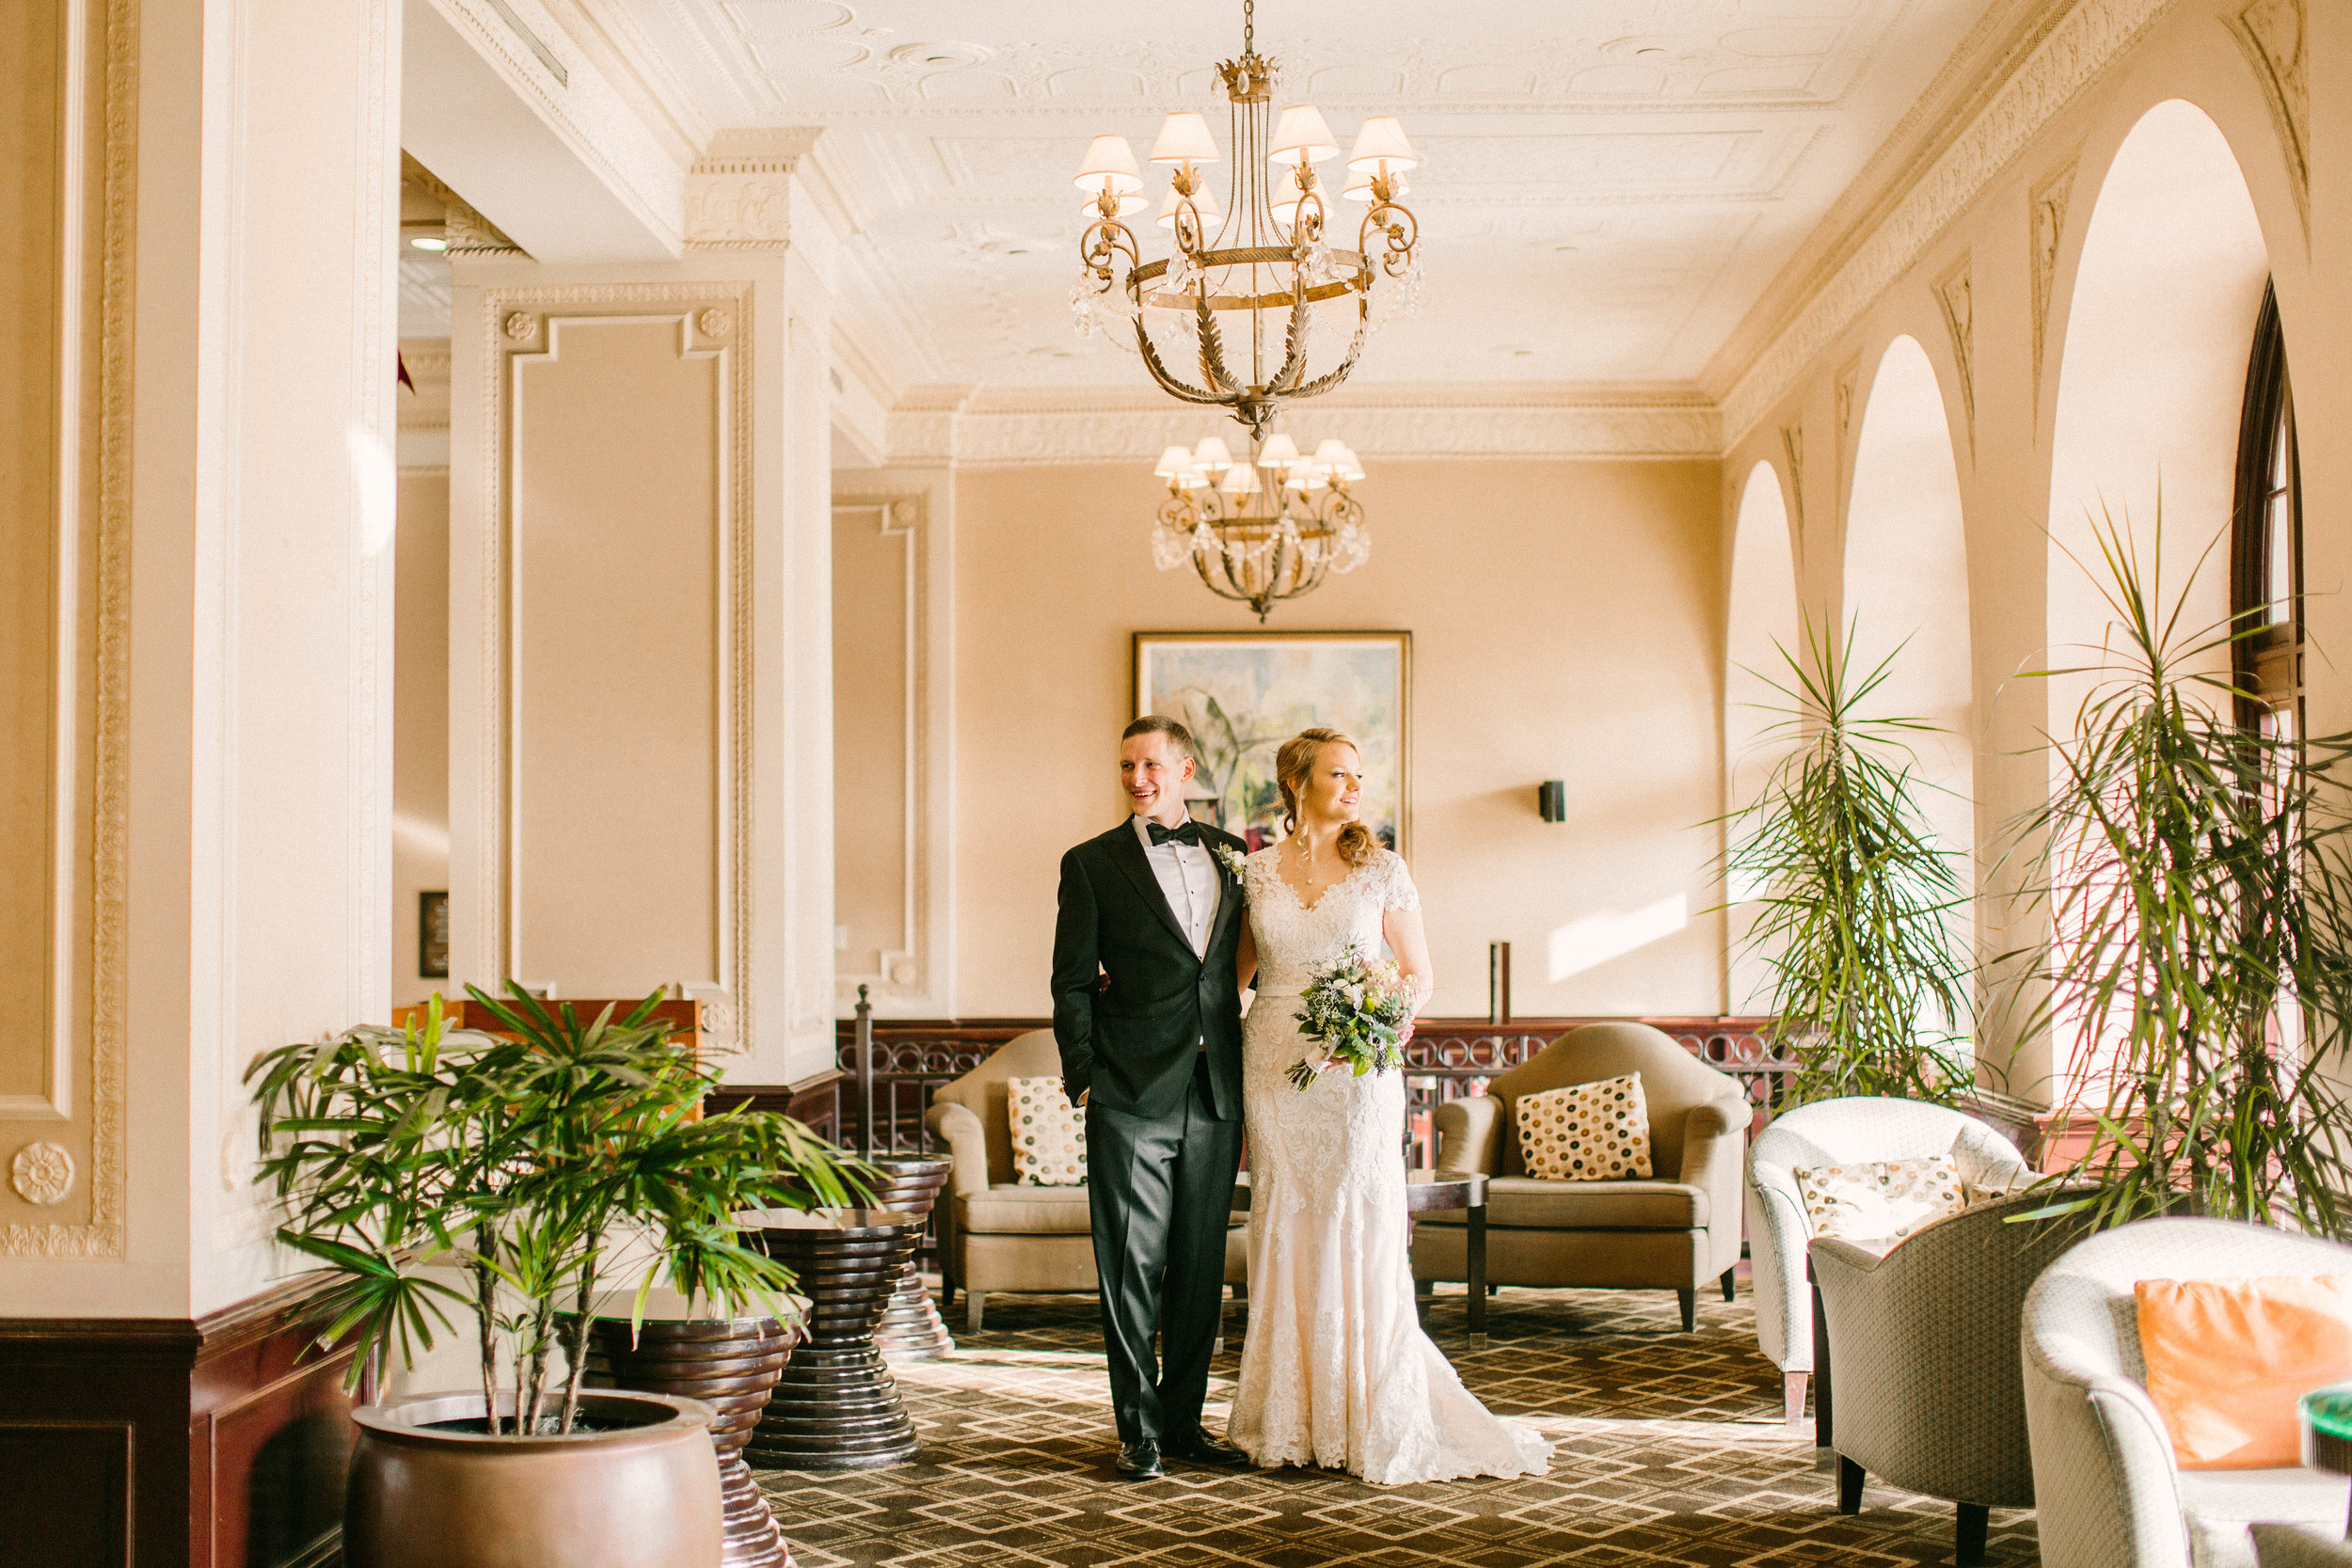 Veronica Young Photography, St. Louis Wedding photographer, Chase Park Plaza Wedding